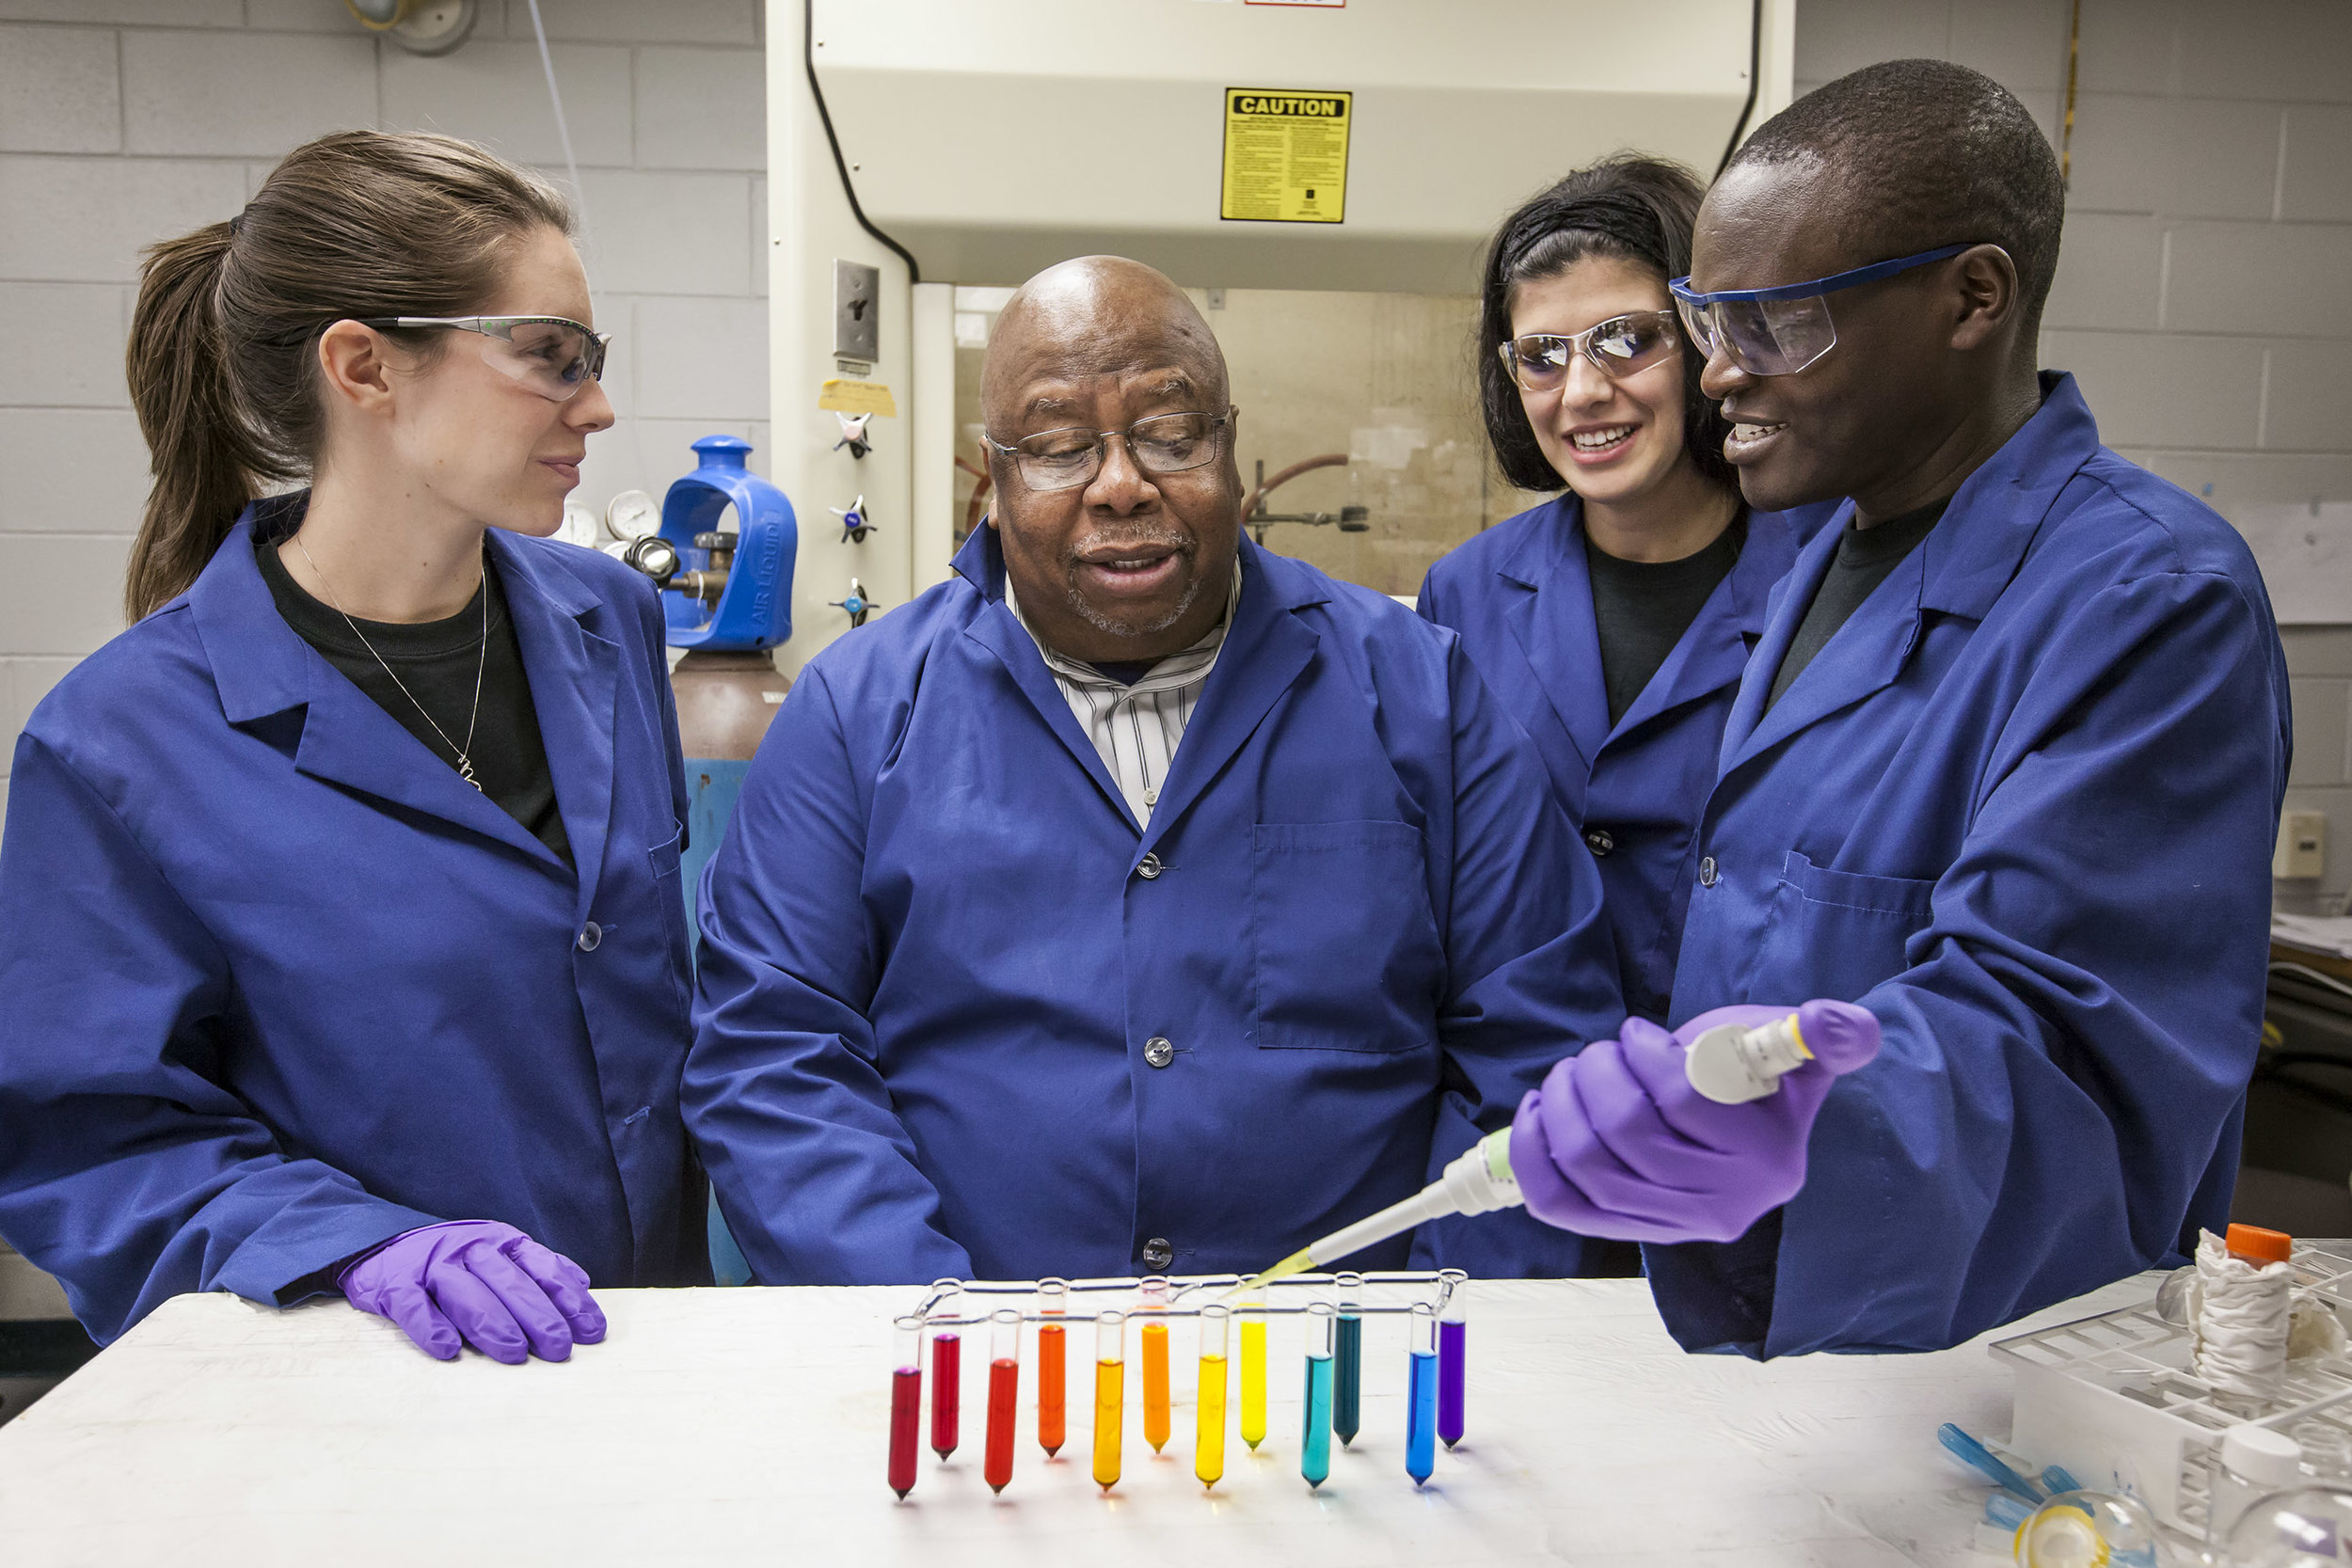 Dr. Isiah Warner working with his students Kelsey Mato, Dr. Suzana Hamdan and Dr. Paul Magut in his lab. Credit: LSU Office of Research and Economic Development.